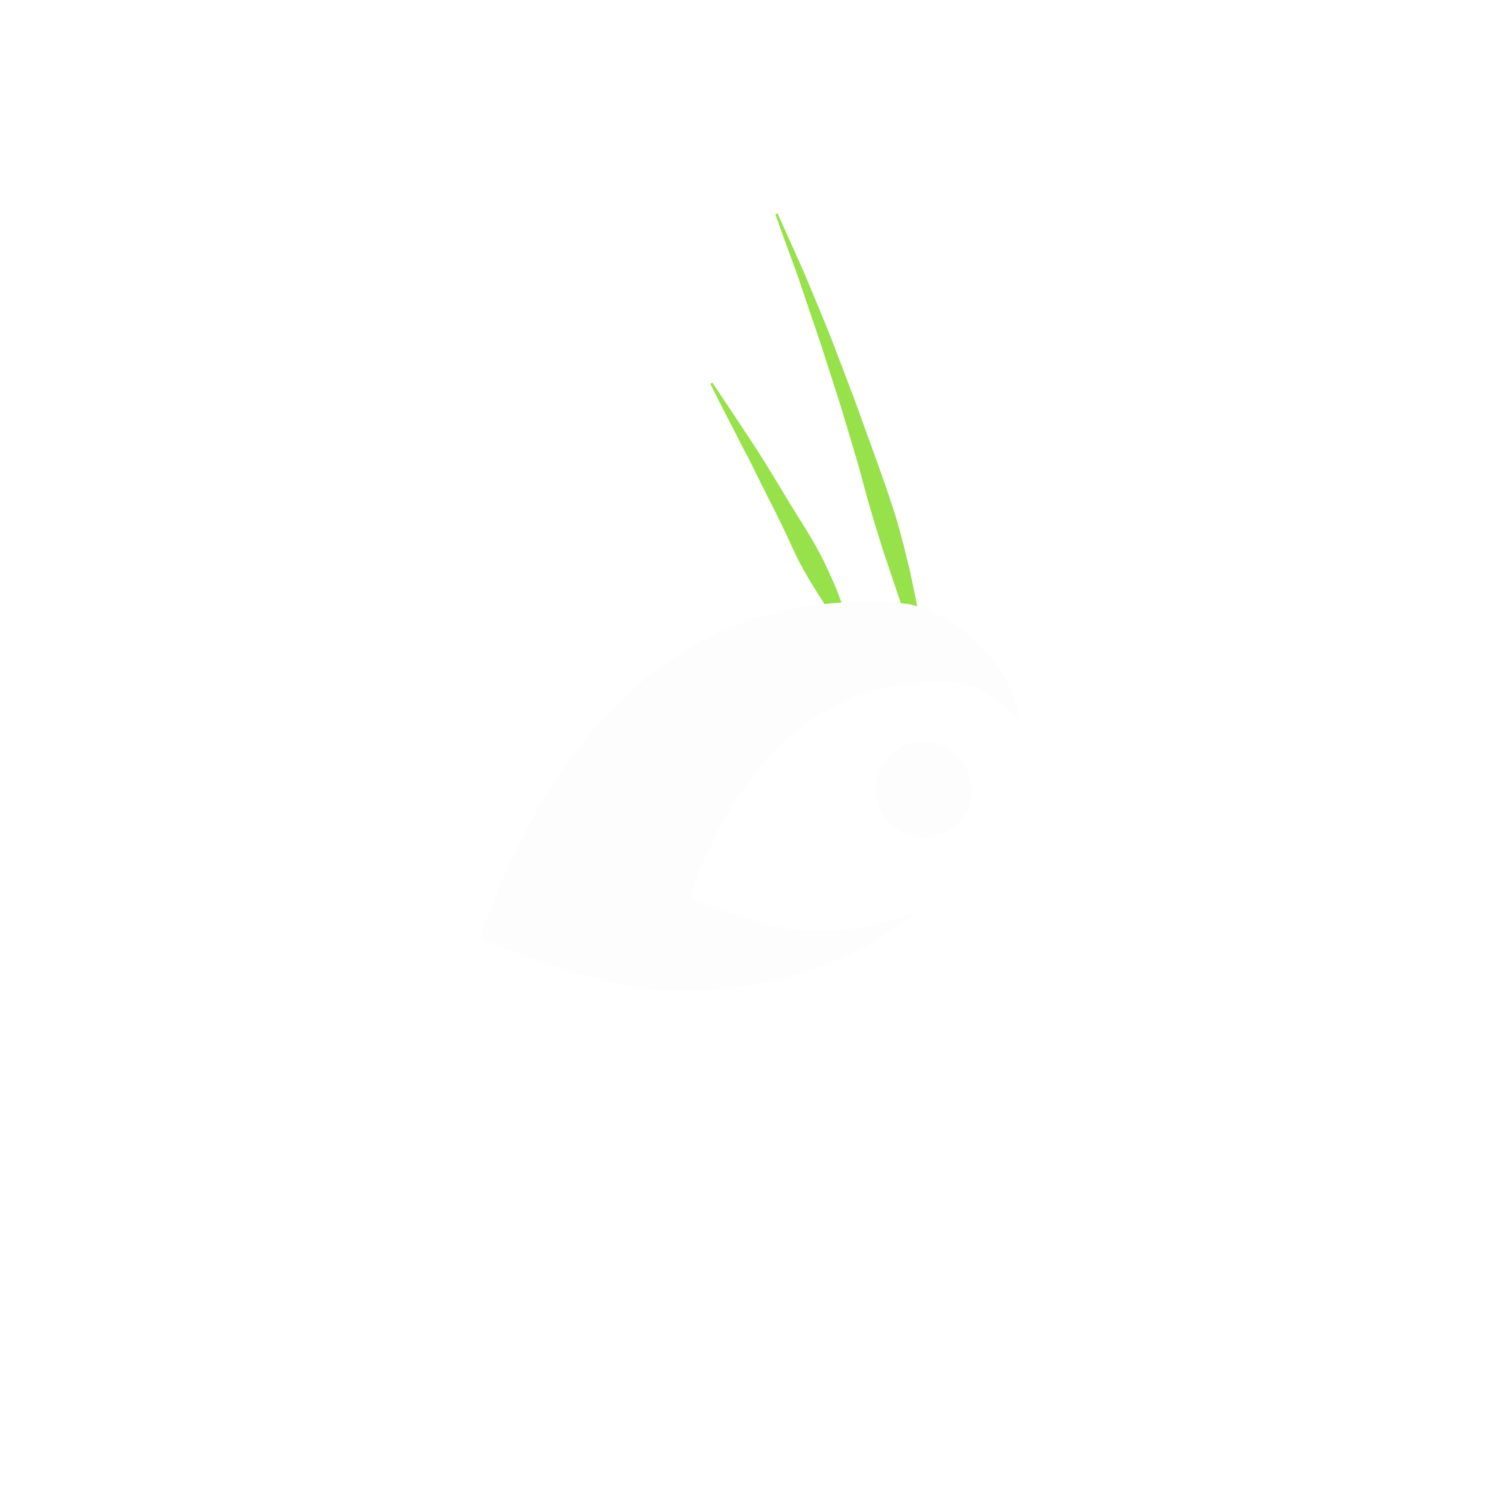 Advention